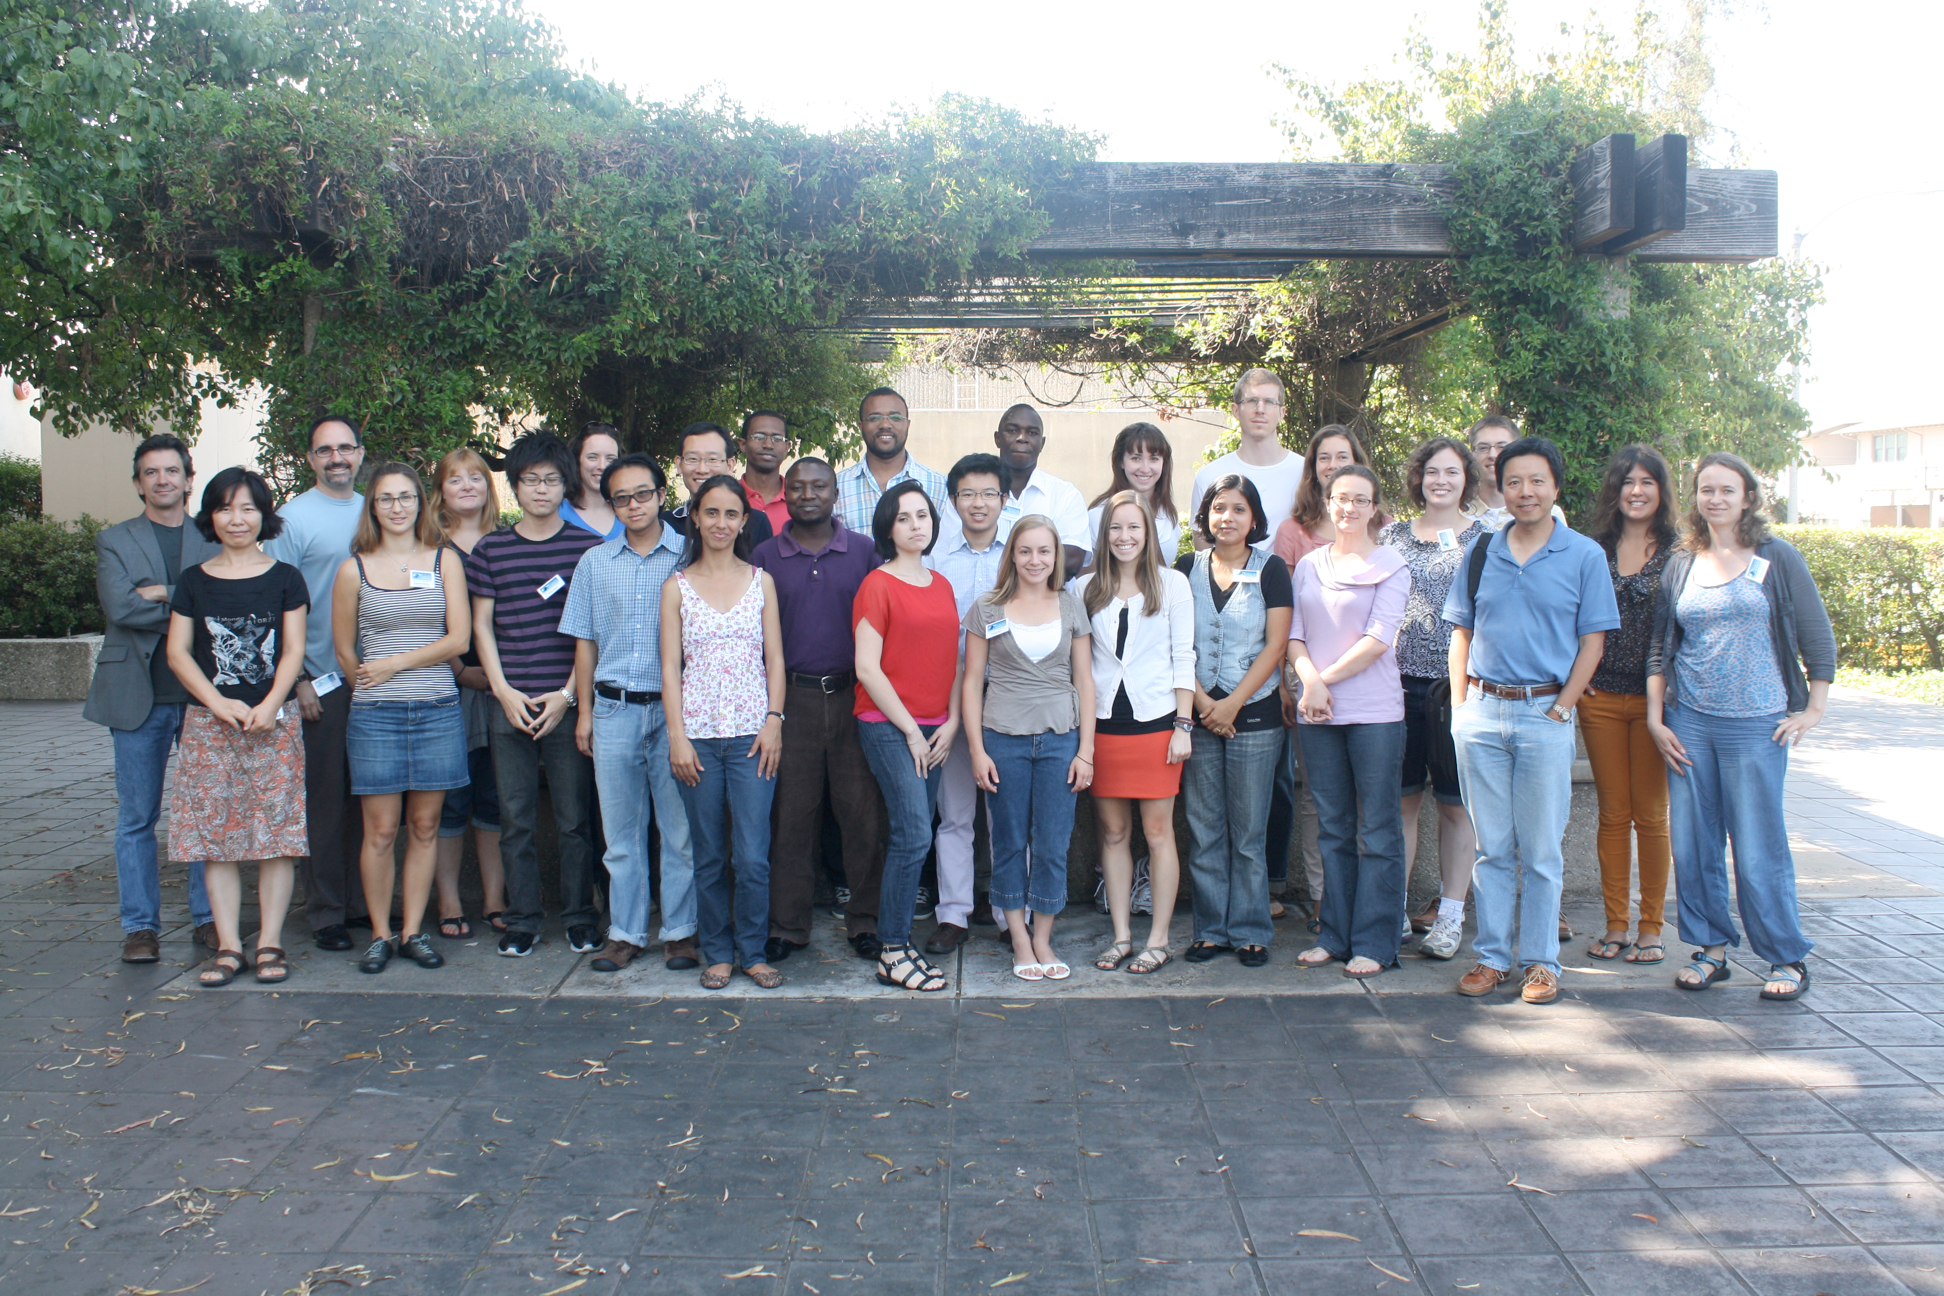 Summer school class of 2012 group photo